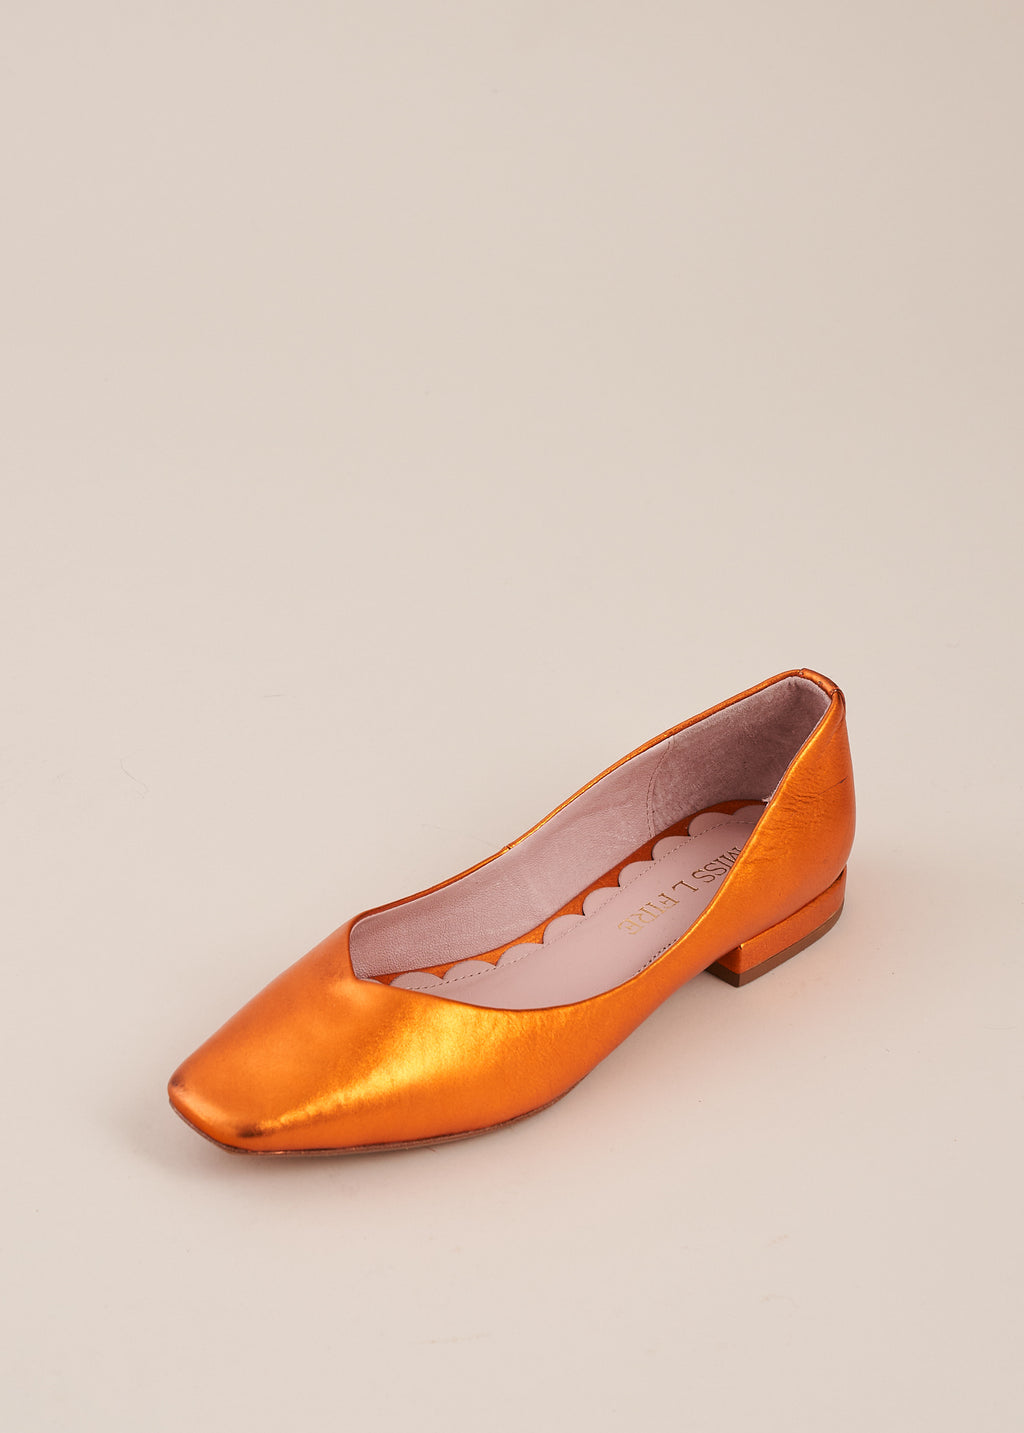 Polly orange metallic square toe ballet flat, by Miss L Fire. The perfect ballet flat for every day, weddings , bridesmaids. Your go to flat for the summer.